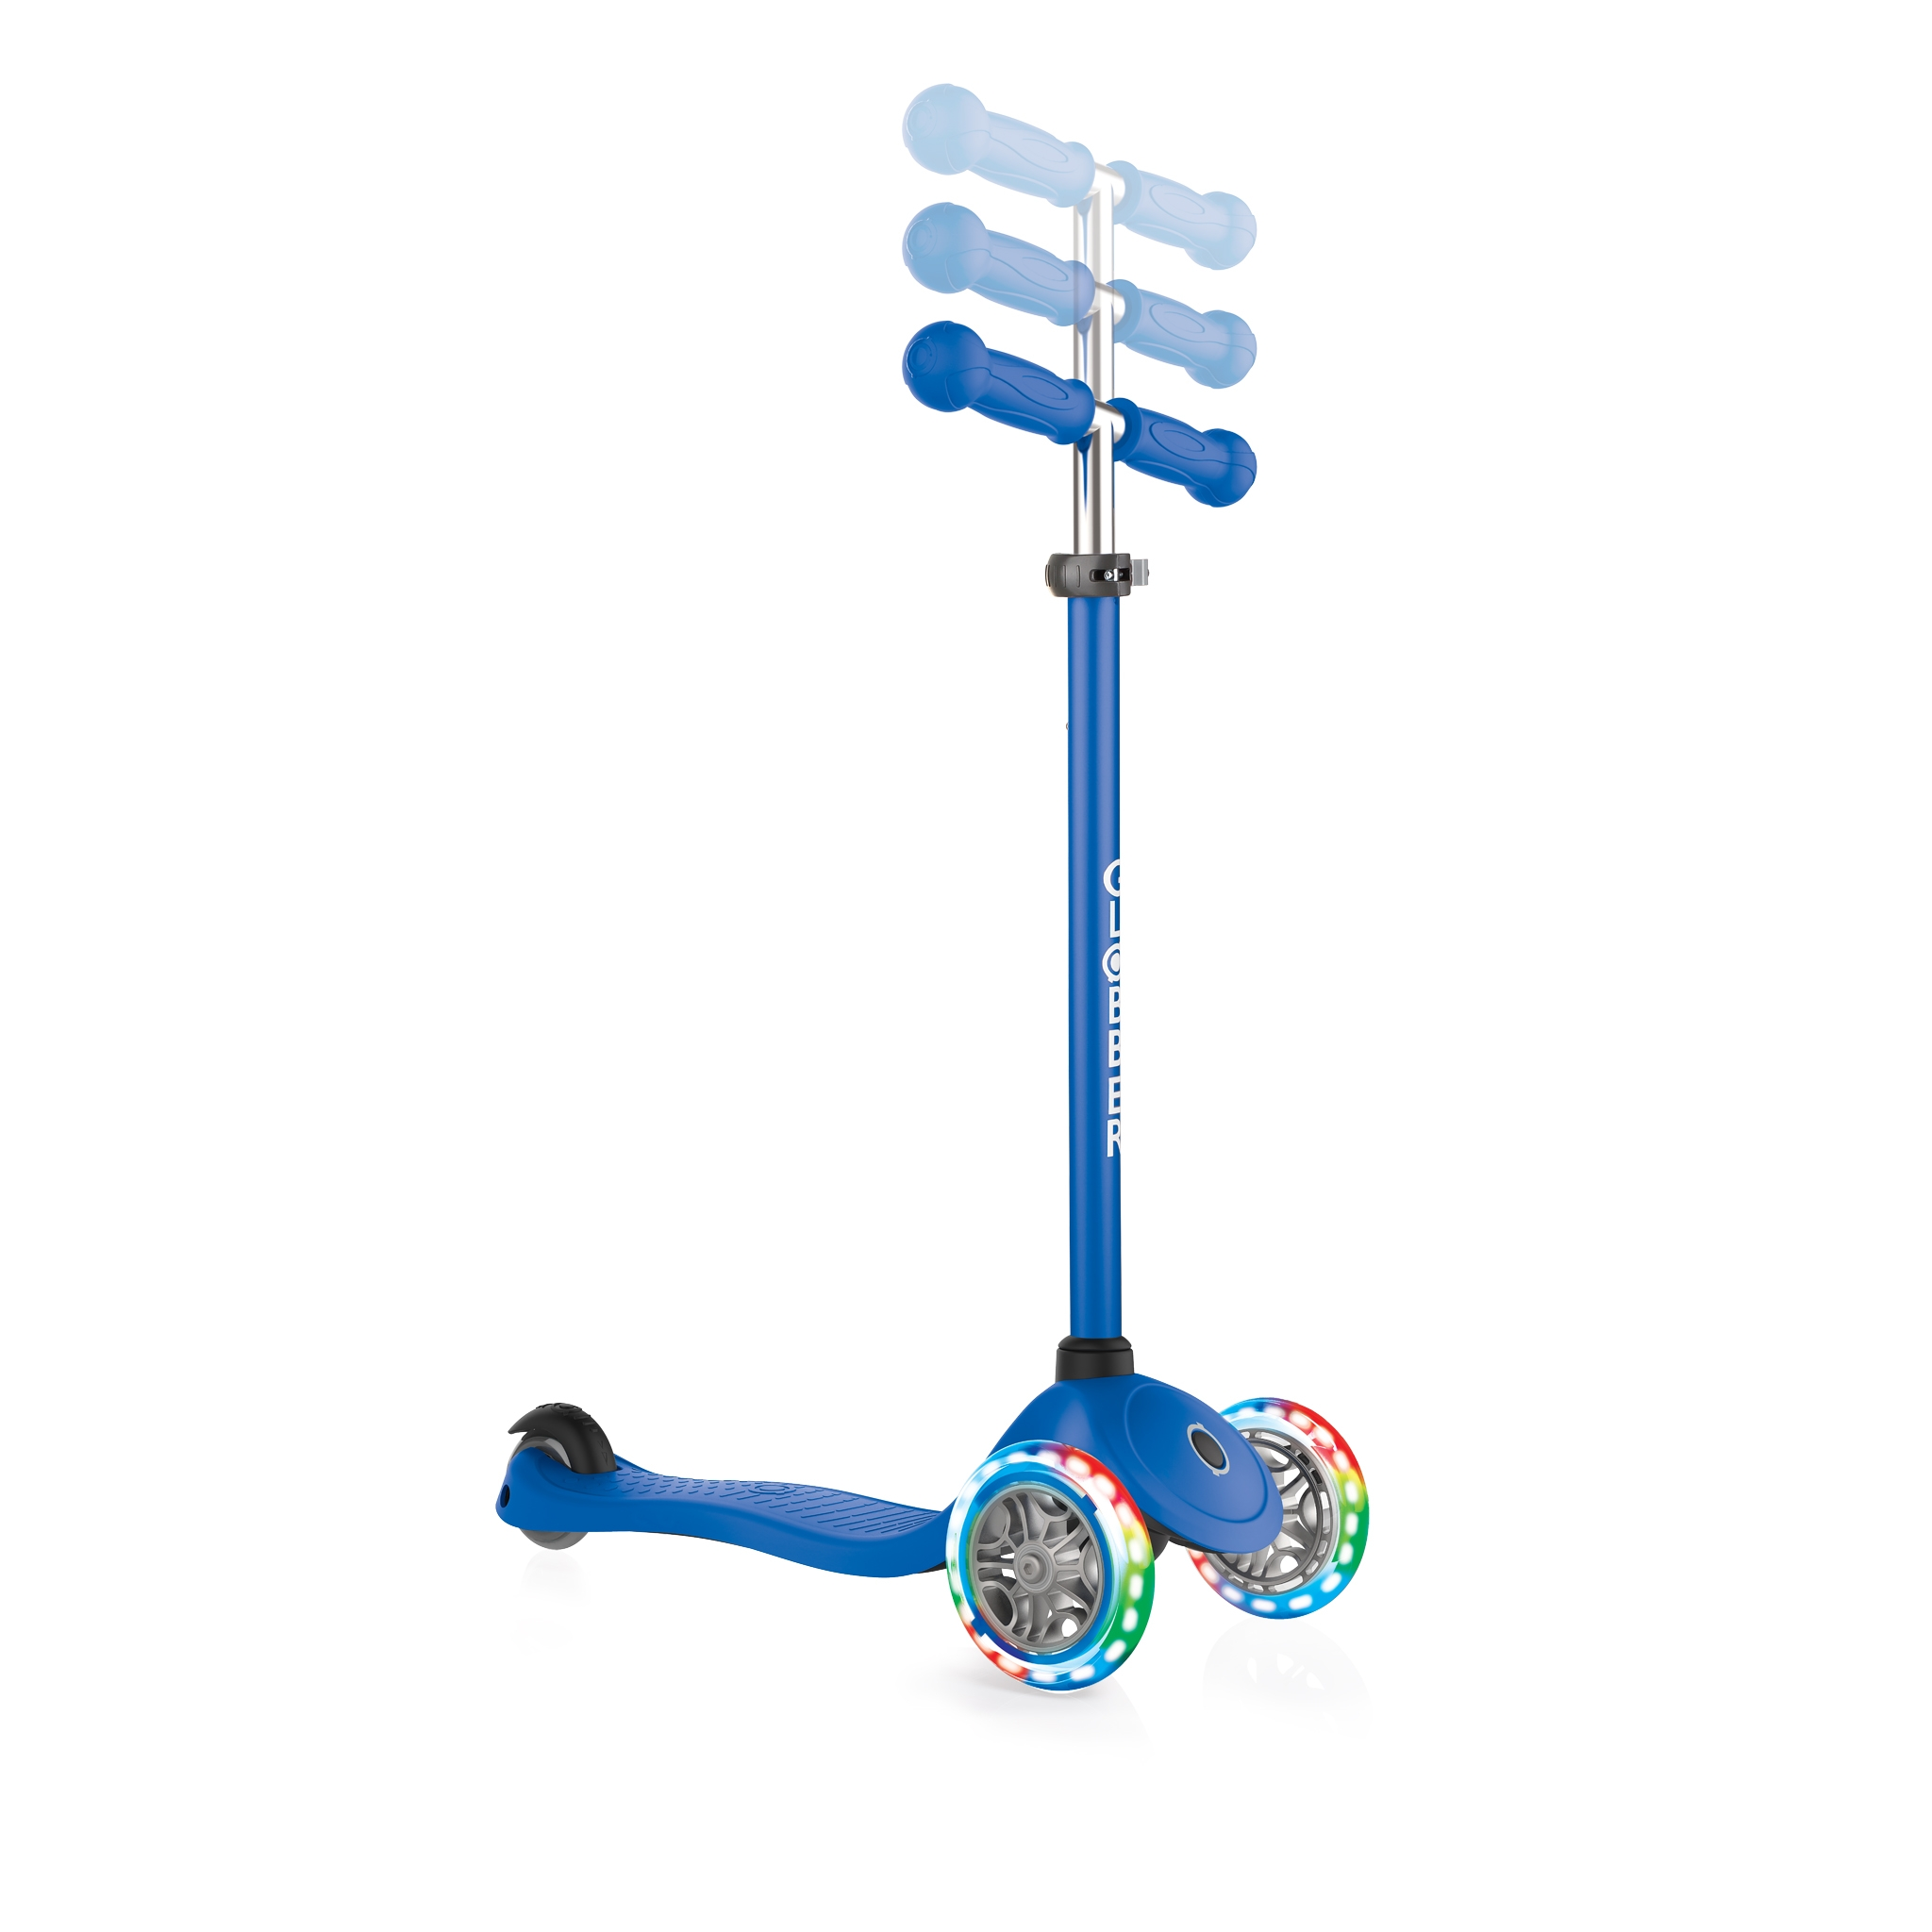 PRIMO-LIGHTS-3-wheel-scooter-for-kids-with-3-height-adjustable-T-bar_navy-blue.jpg.